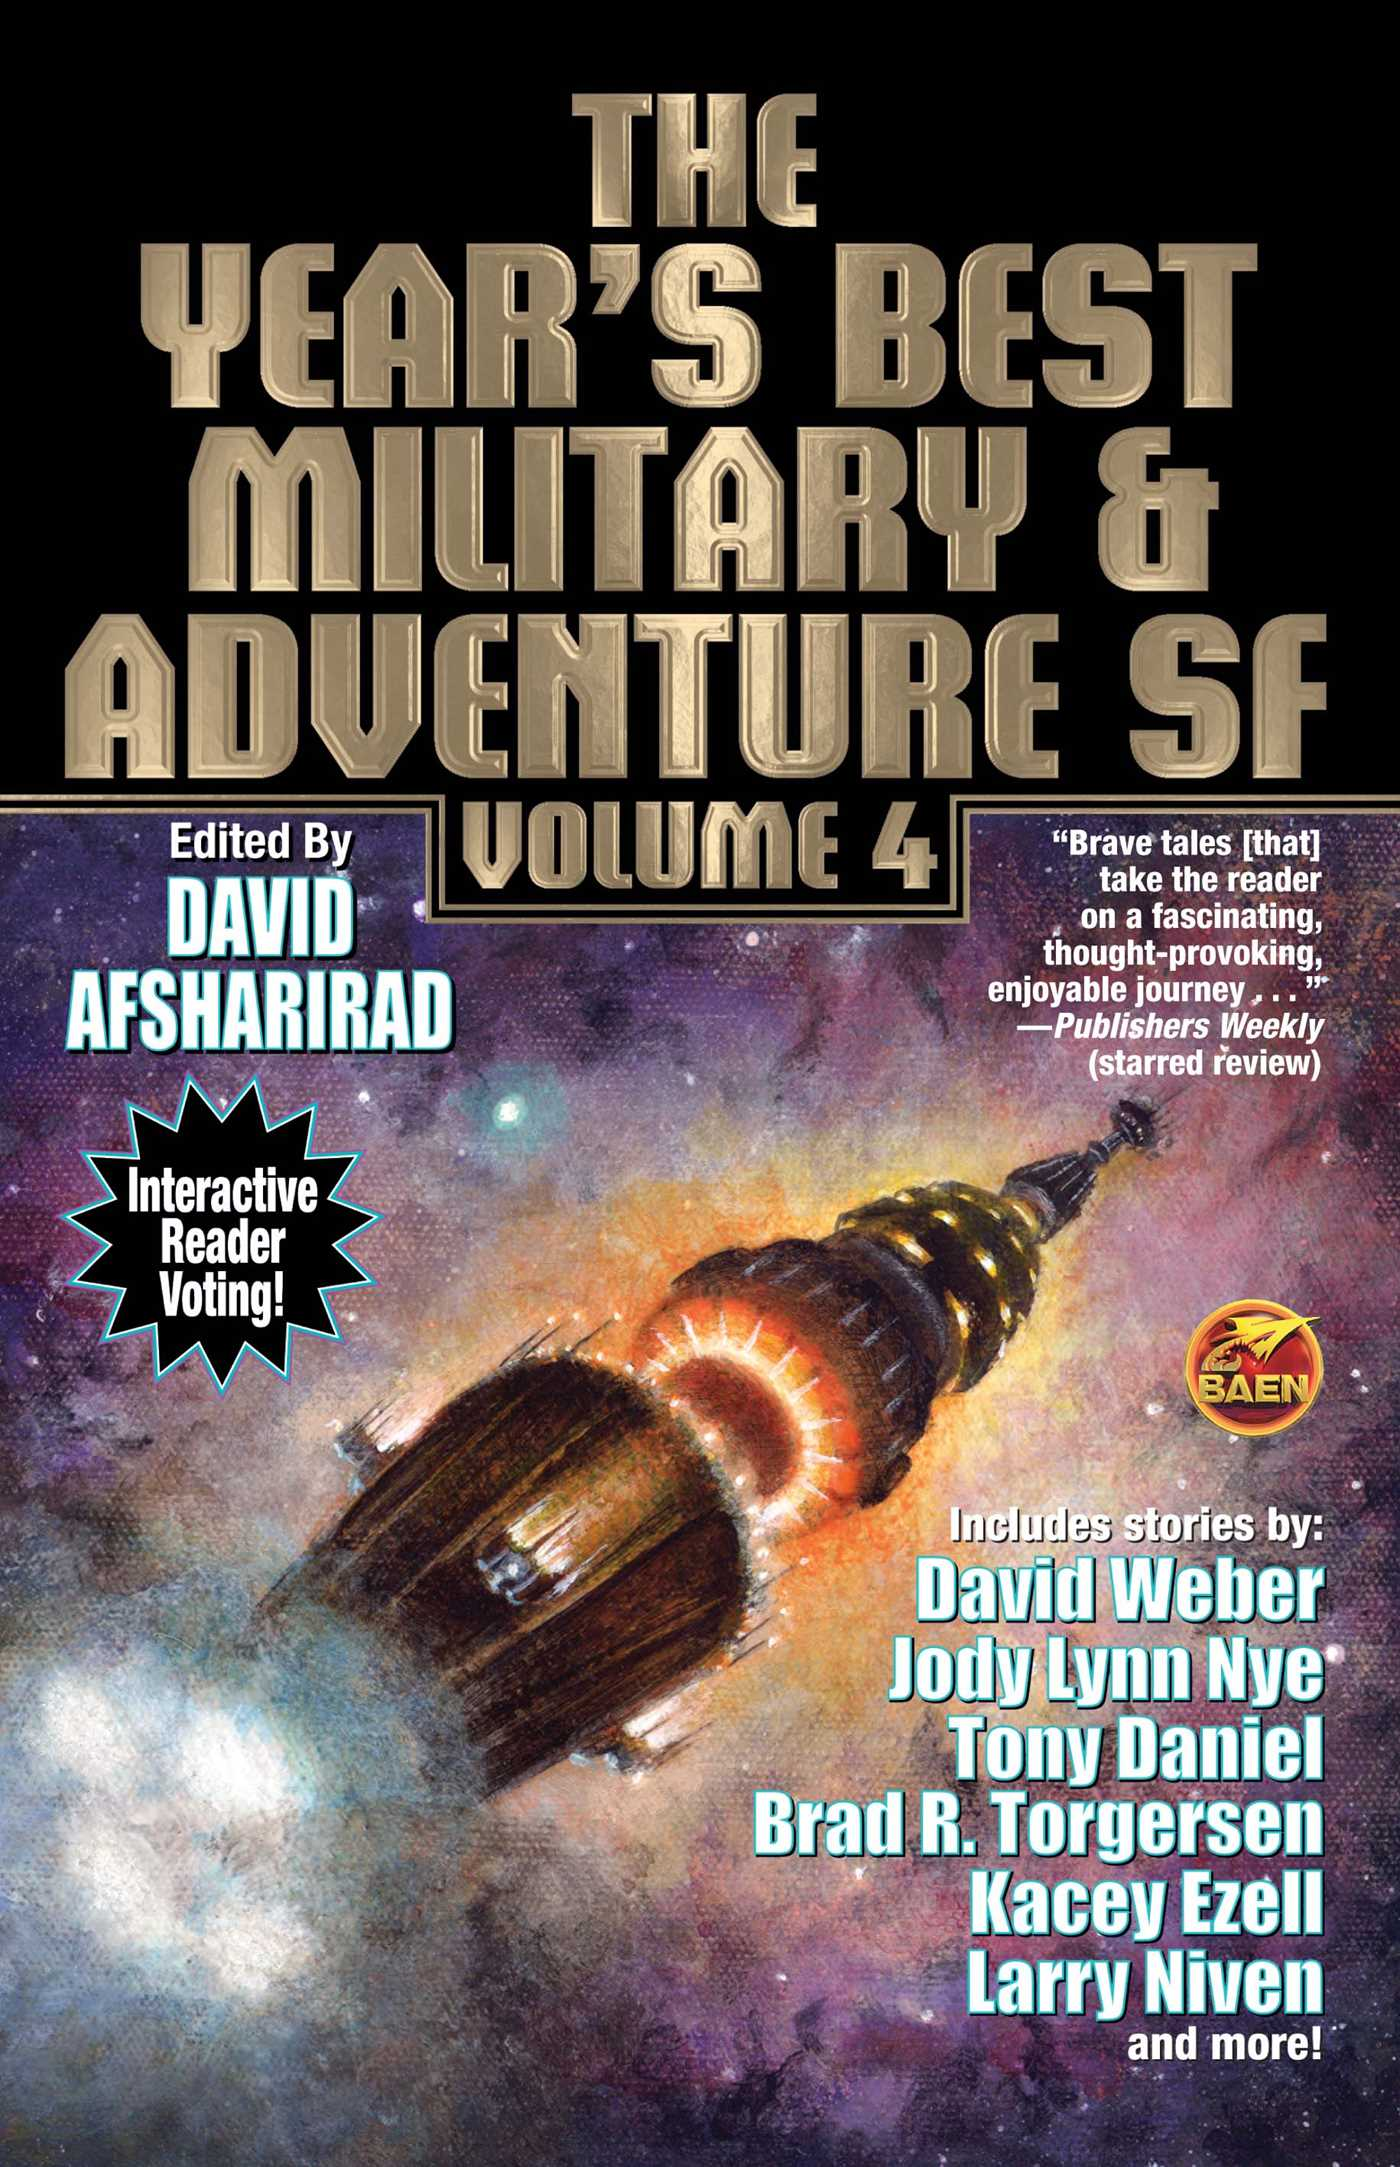 The years best military and adventure sf volume 4 9781481483322 hr